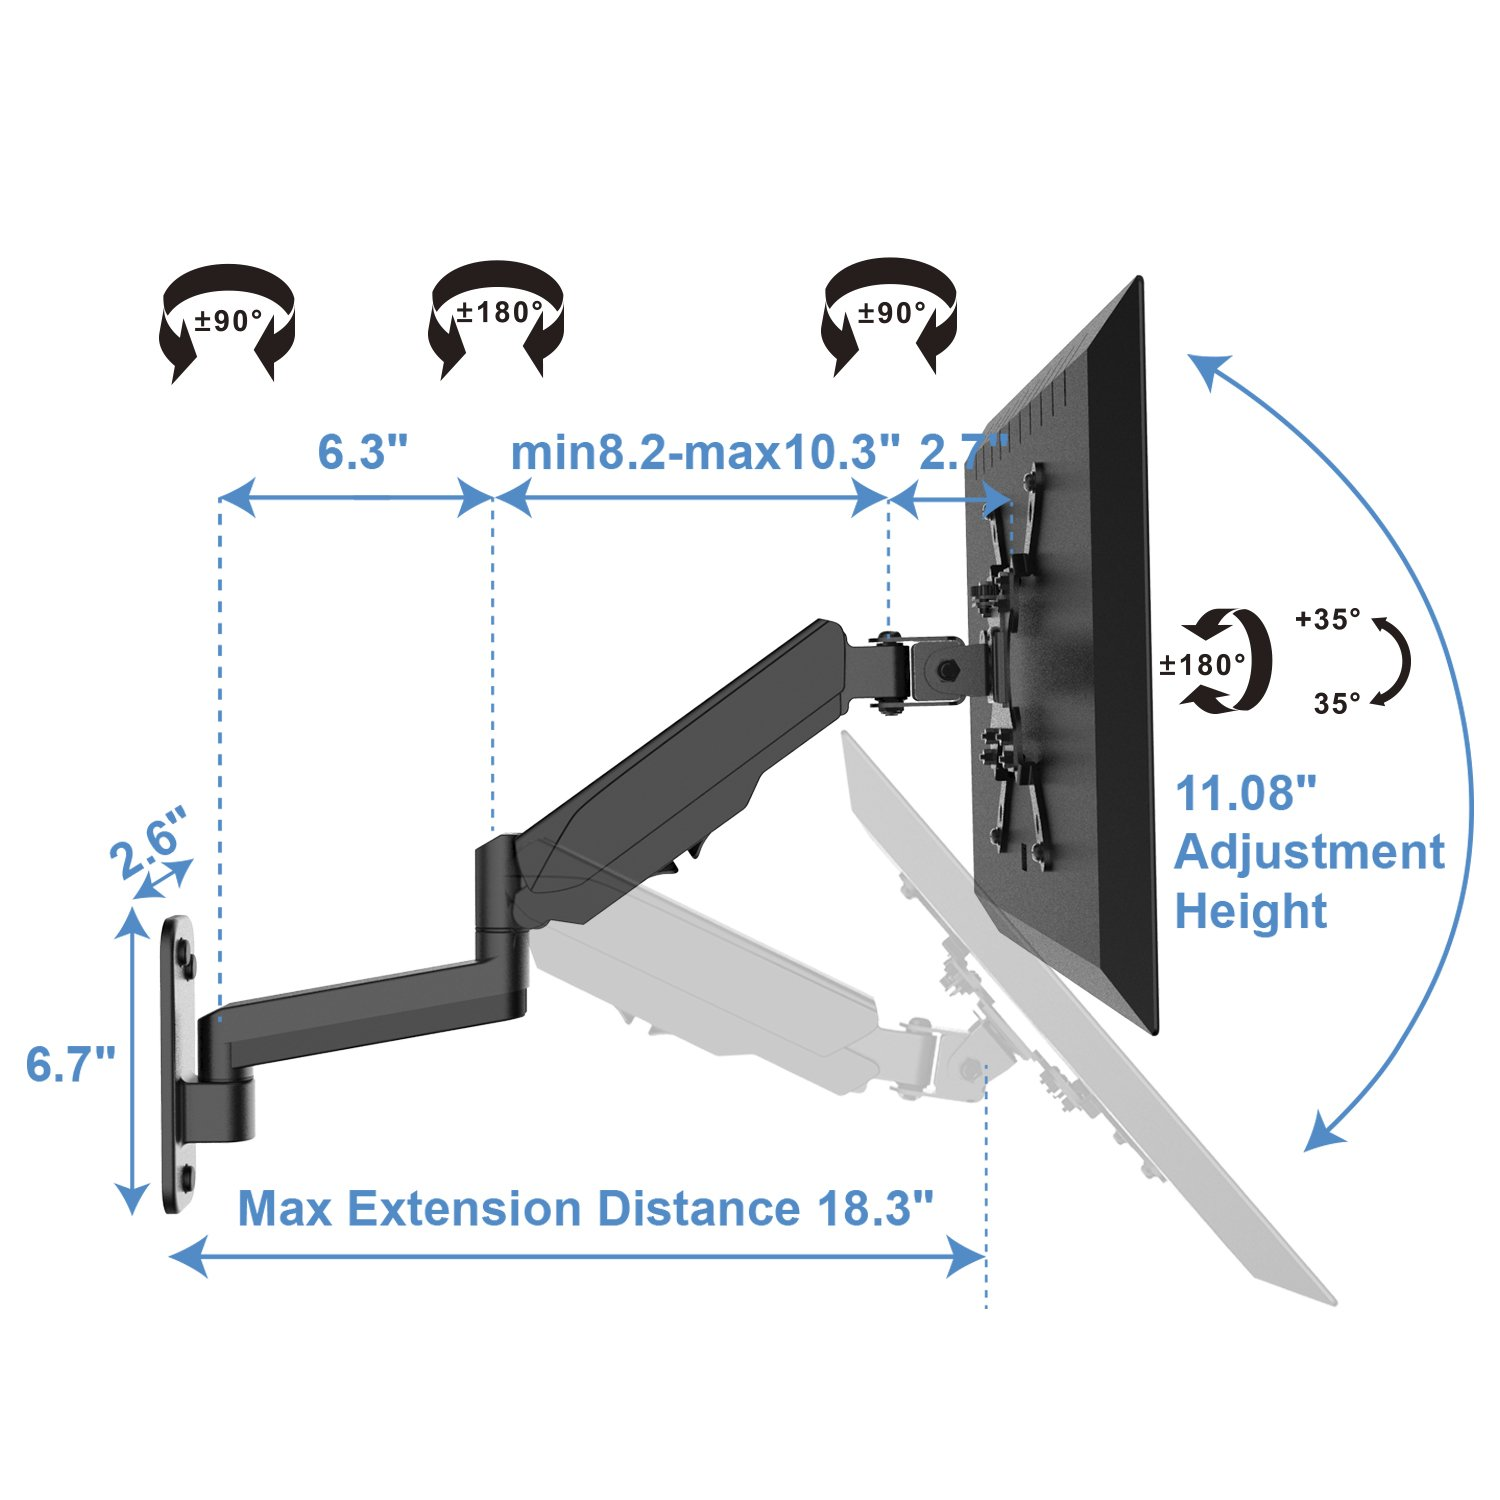 Monitor Wall Mount Bracket Articulating Adjustable Gas Spring Single Arm Stand with VESA Extension Kit for 17 to 32 Inch LCD Computer Screens 200x200 200x100 VESA 75x75,100x100